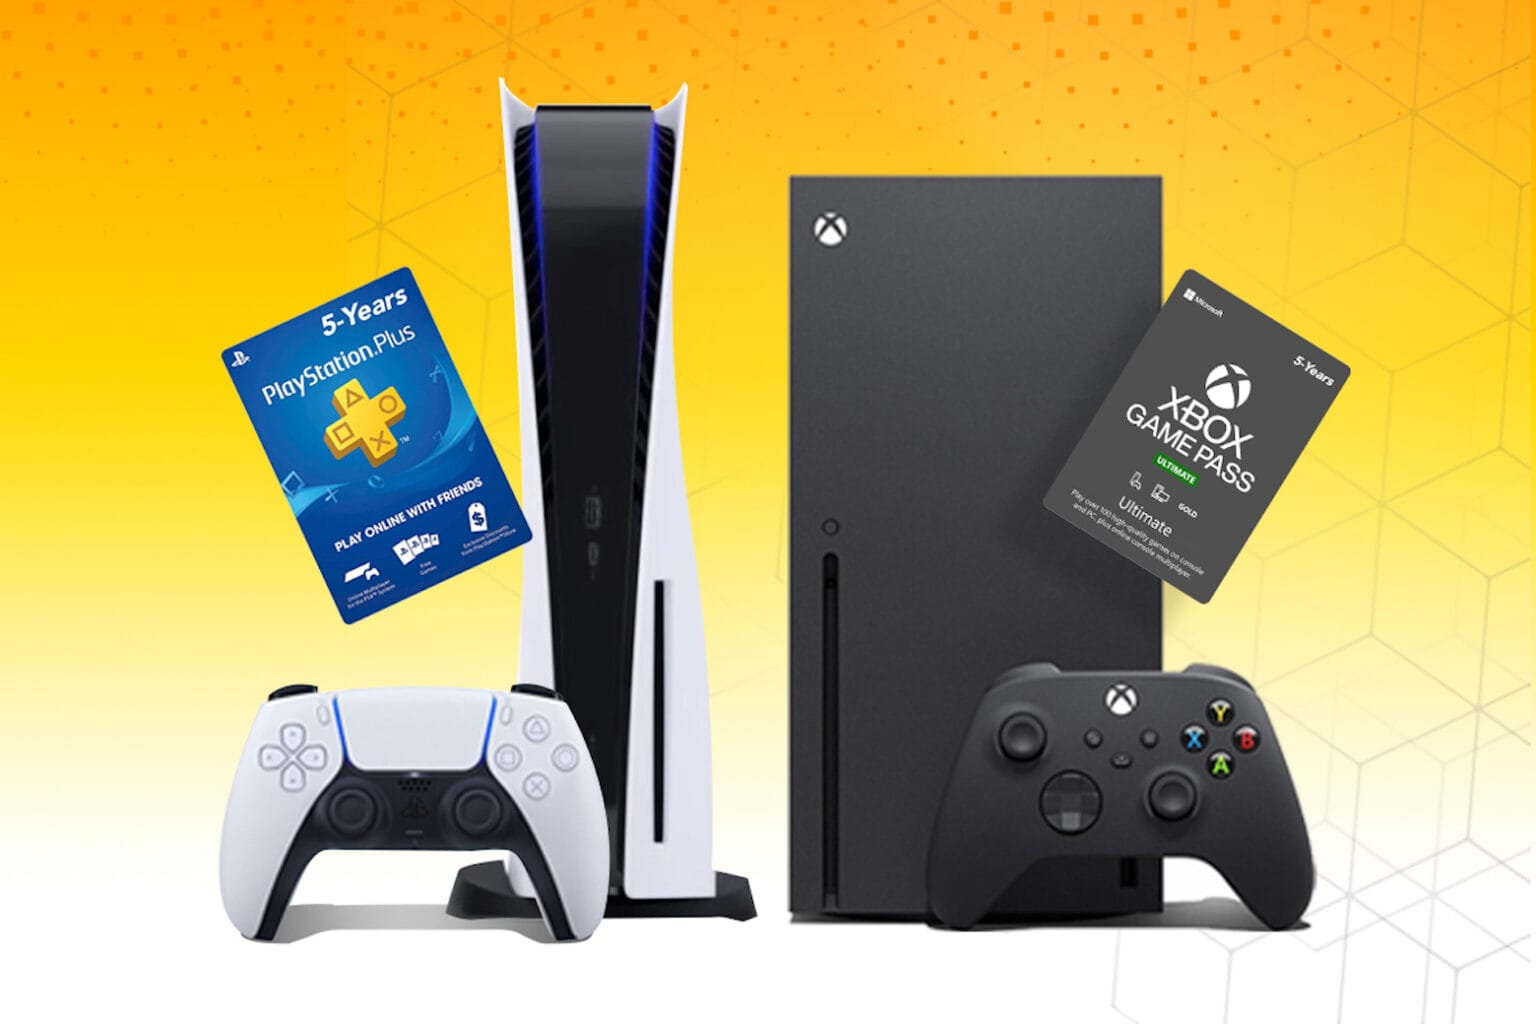 In the Ultimate Gaming Giveaway, you could win a PlayStation 5, an Xbox X Series and much more.